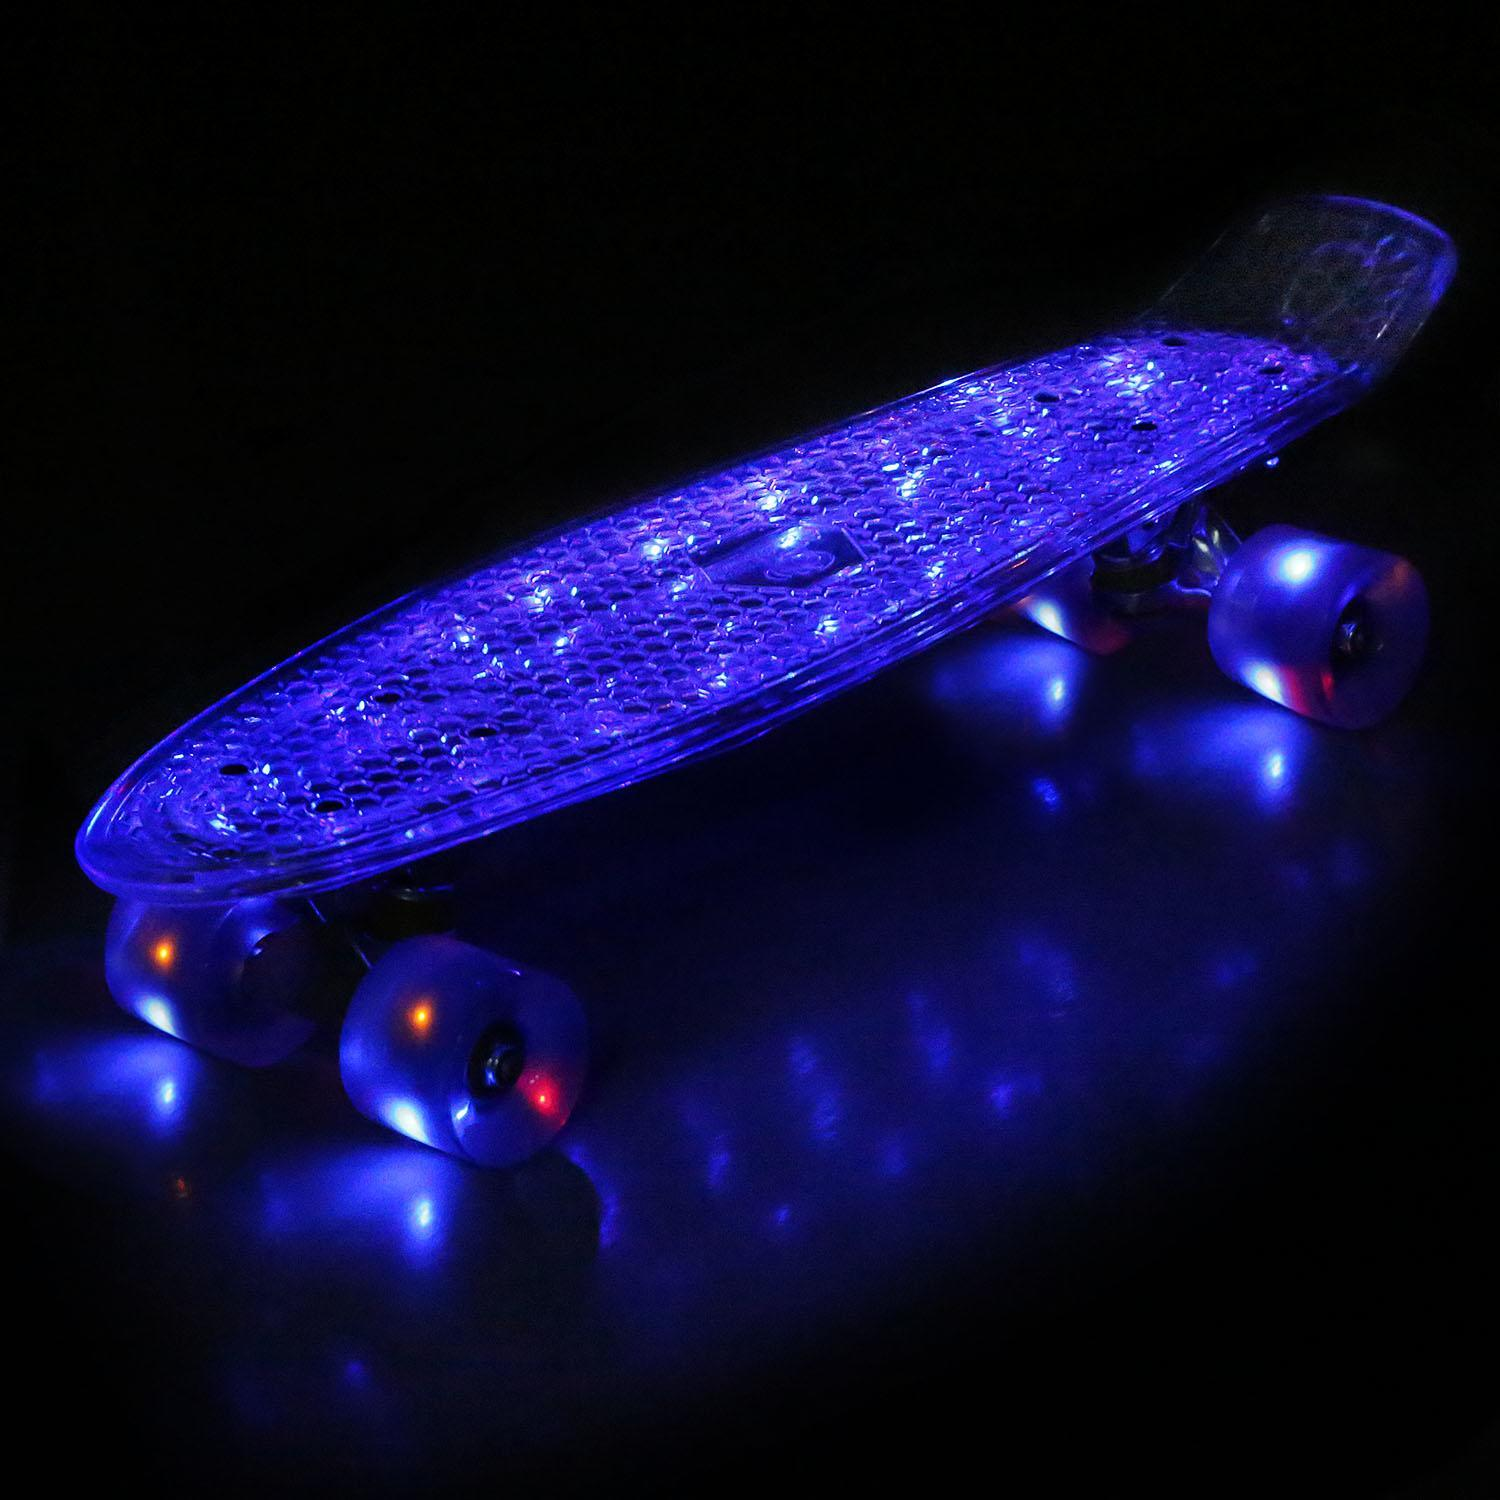 22 Cruiser Crystal Clear Board LED Light Up Wheels Outdoor Complete Deck Skateboard 0